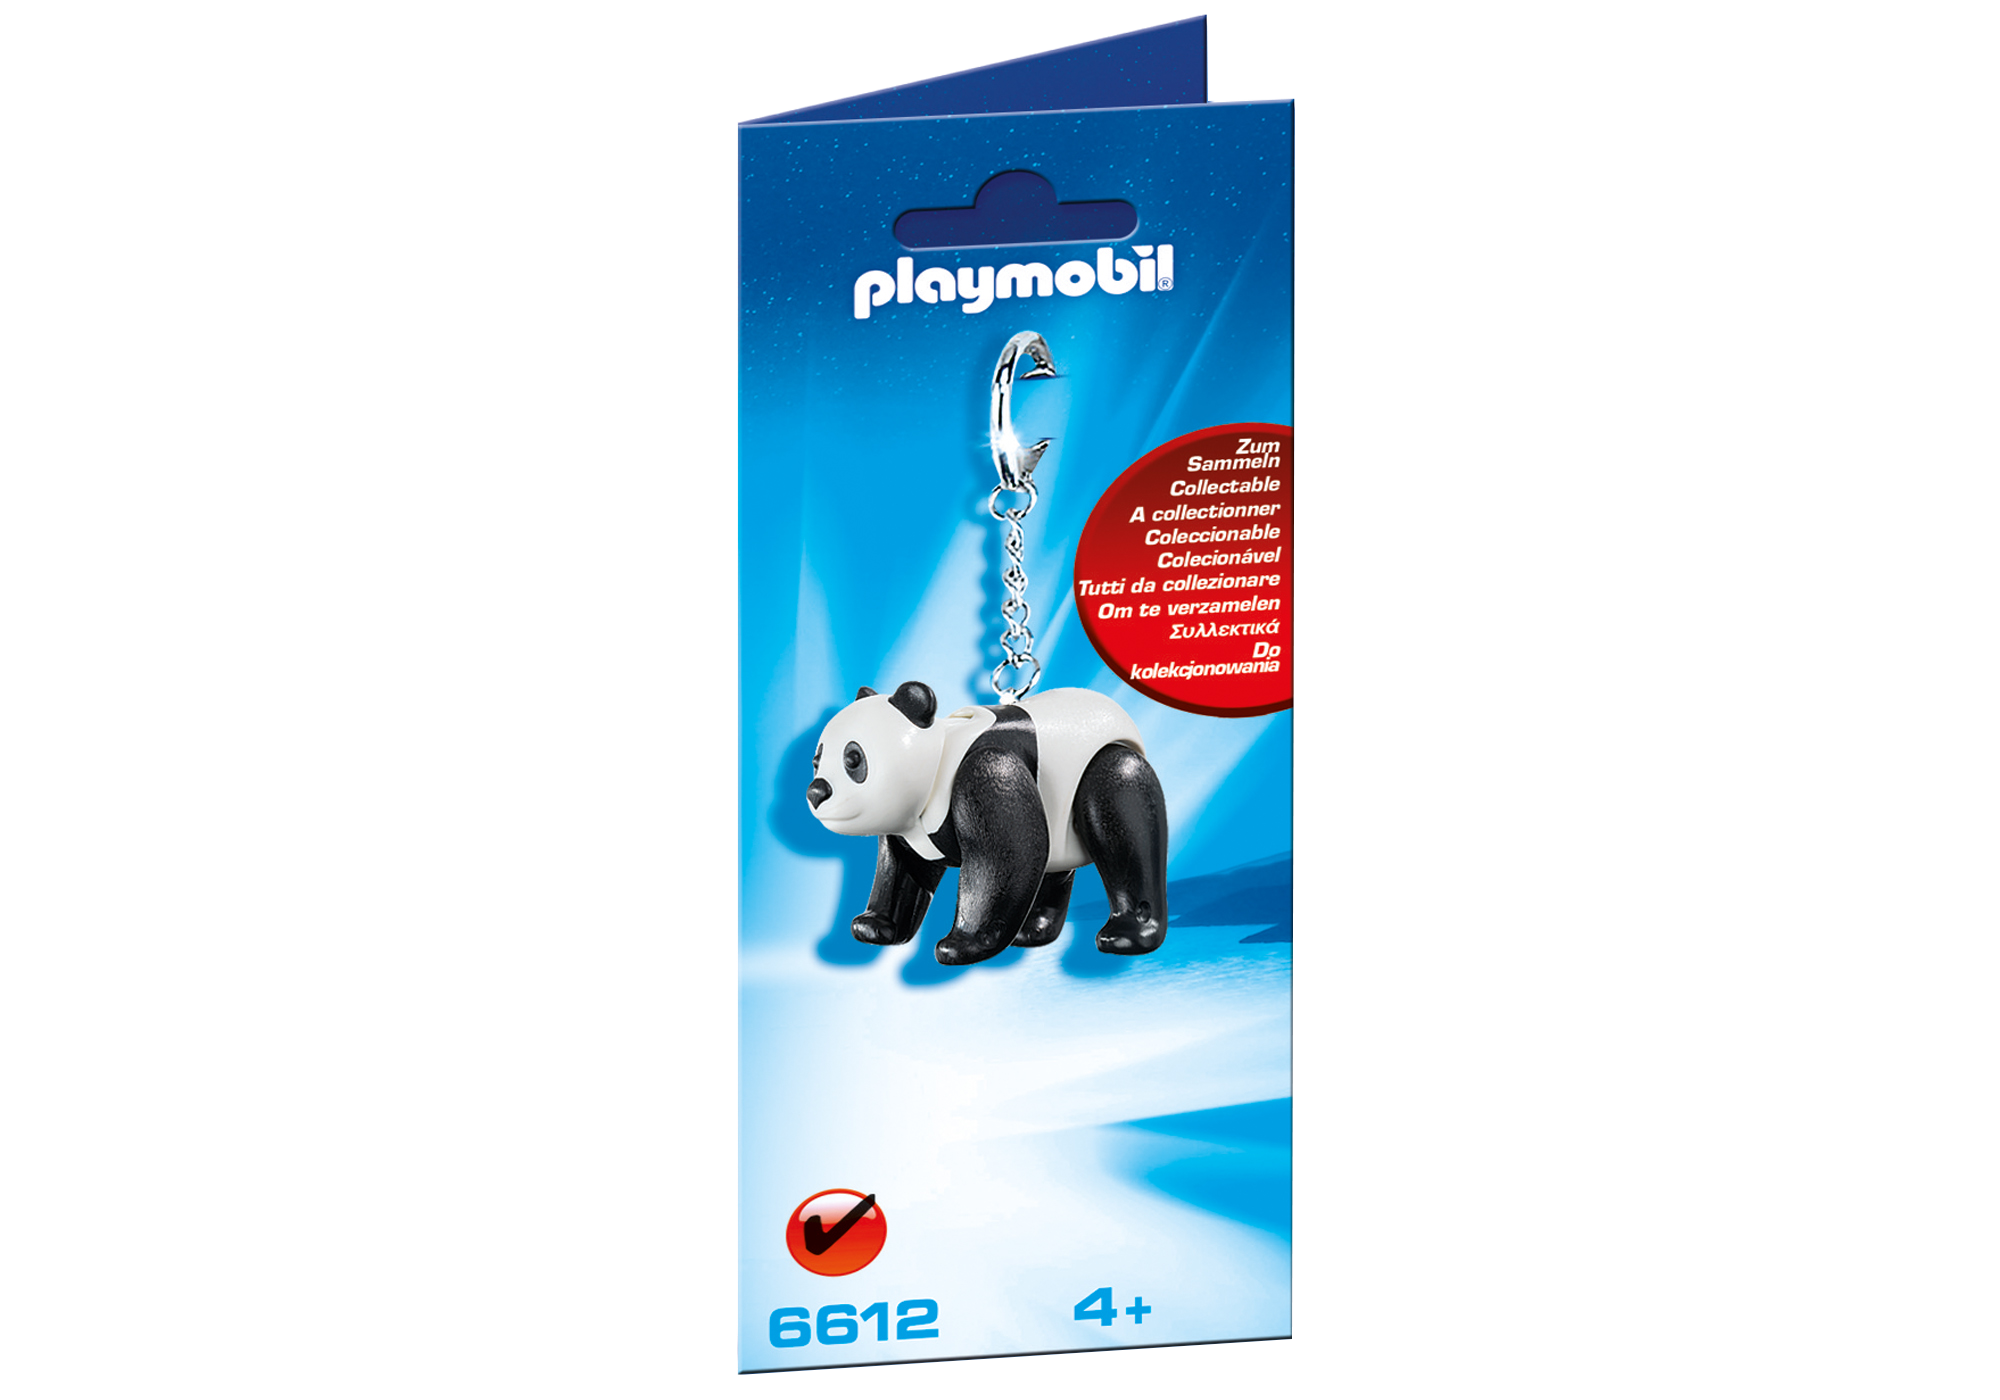 http://media.playmobil.com/i/playmobil/6612_product_box_front